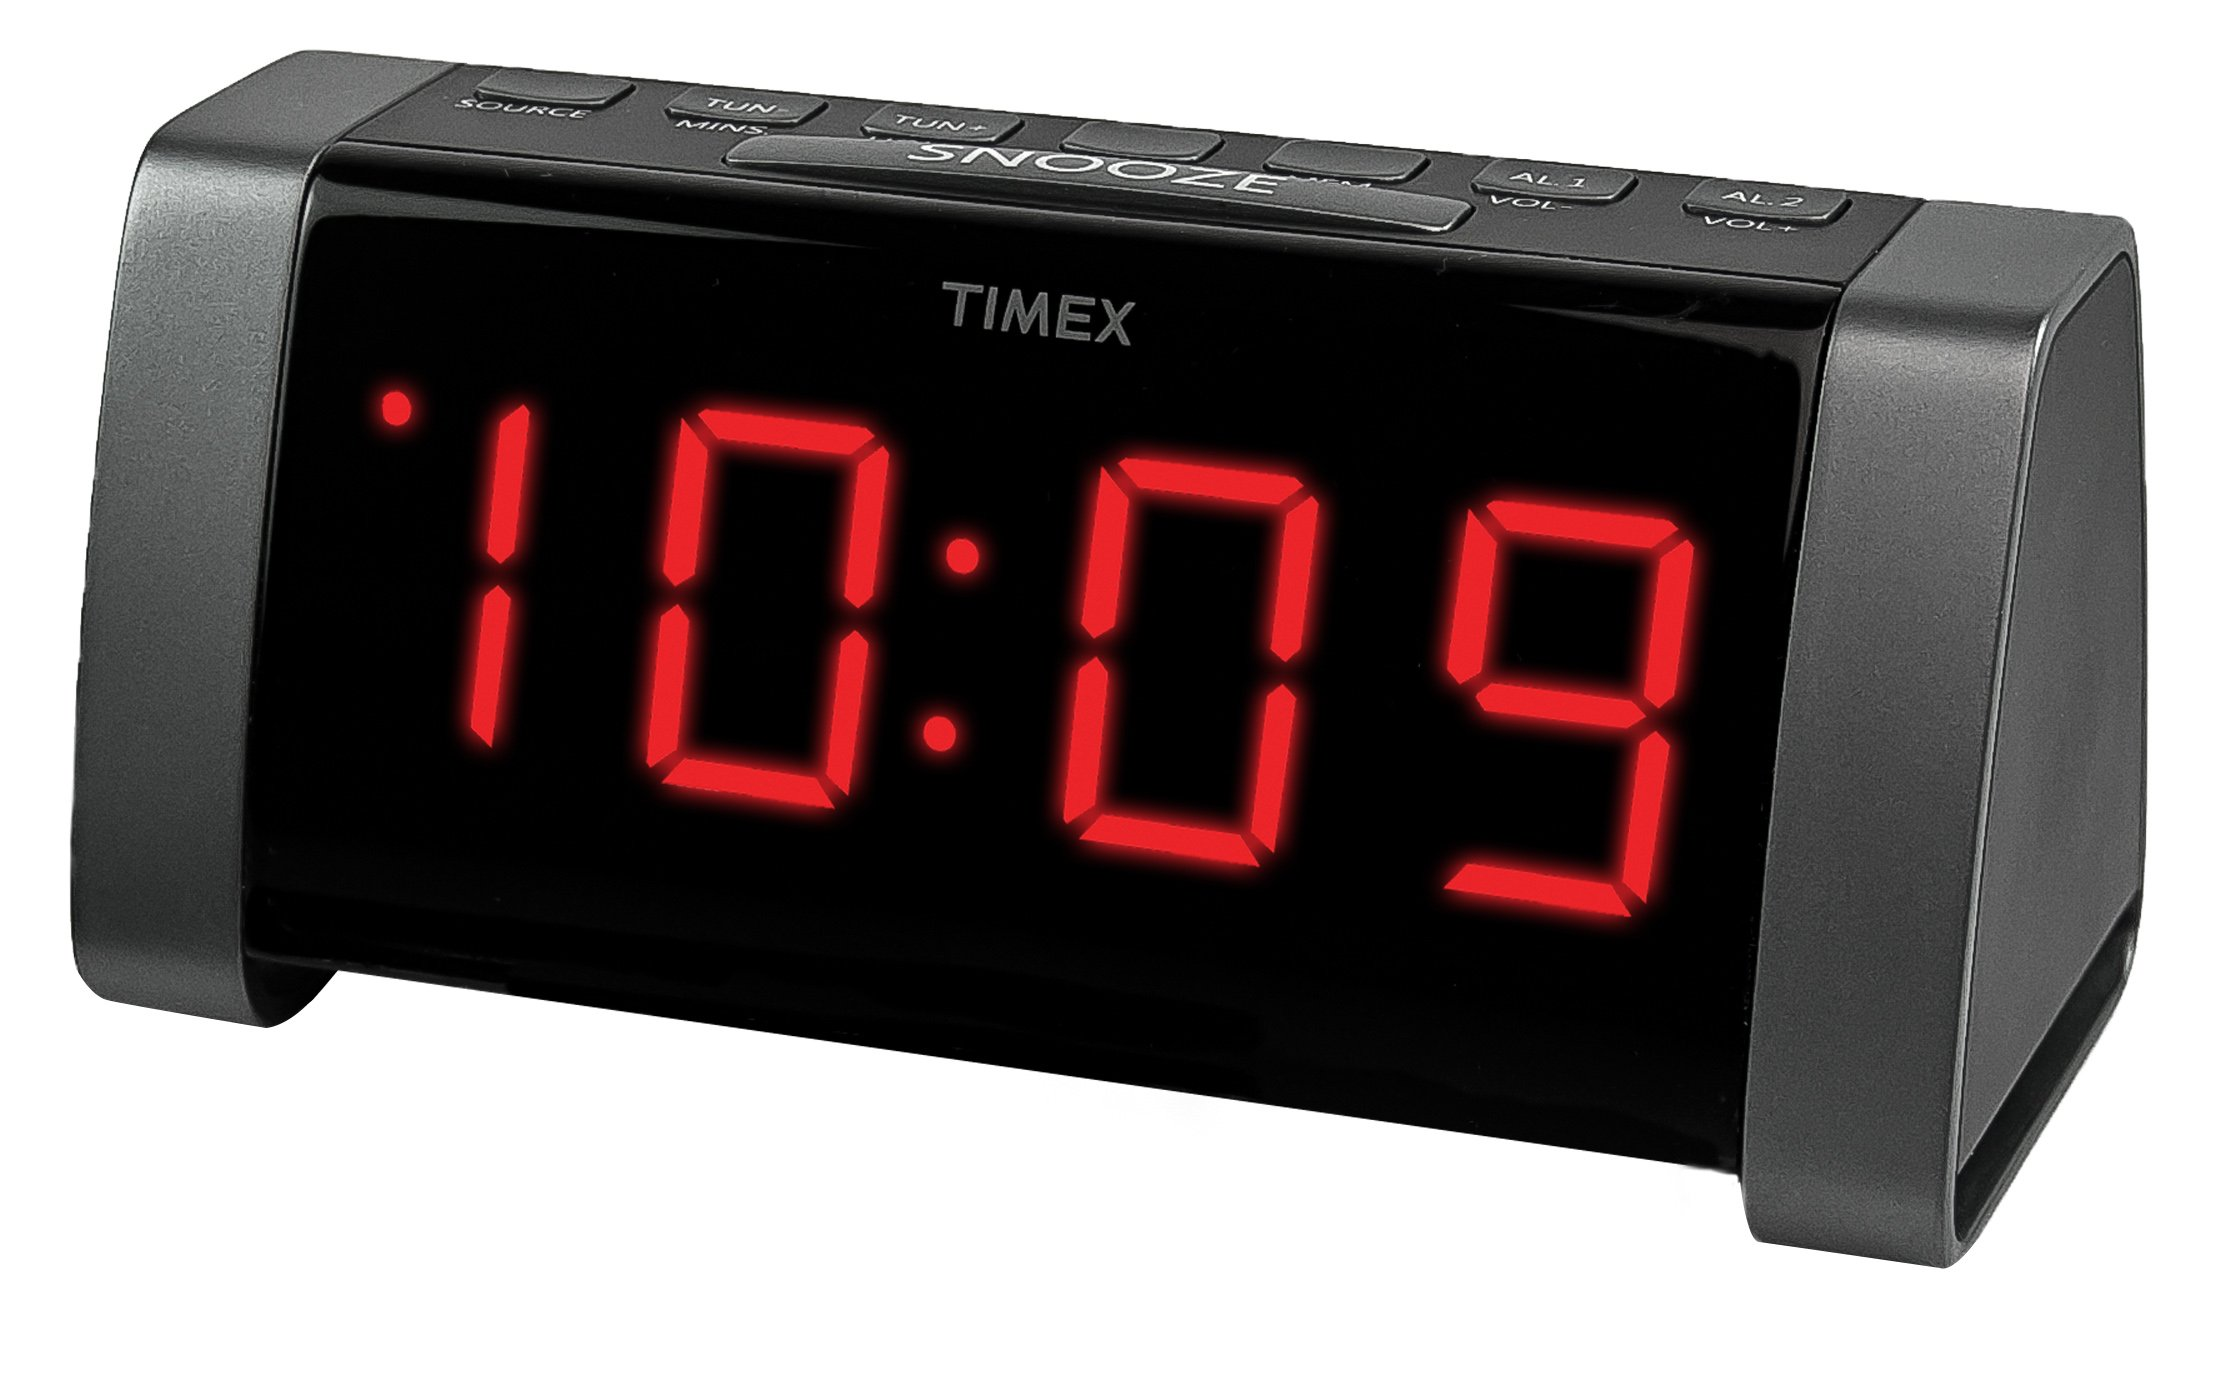 cheap timex clock radio manuals find timex clock radio manuals rh guide alibaba com